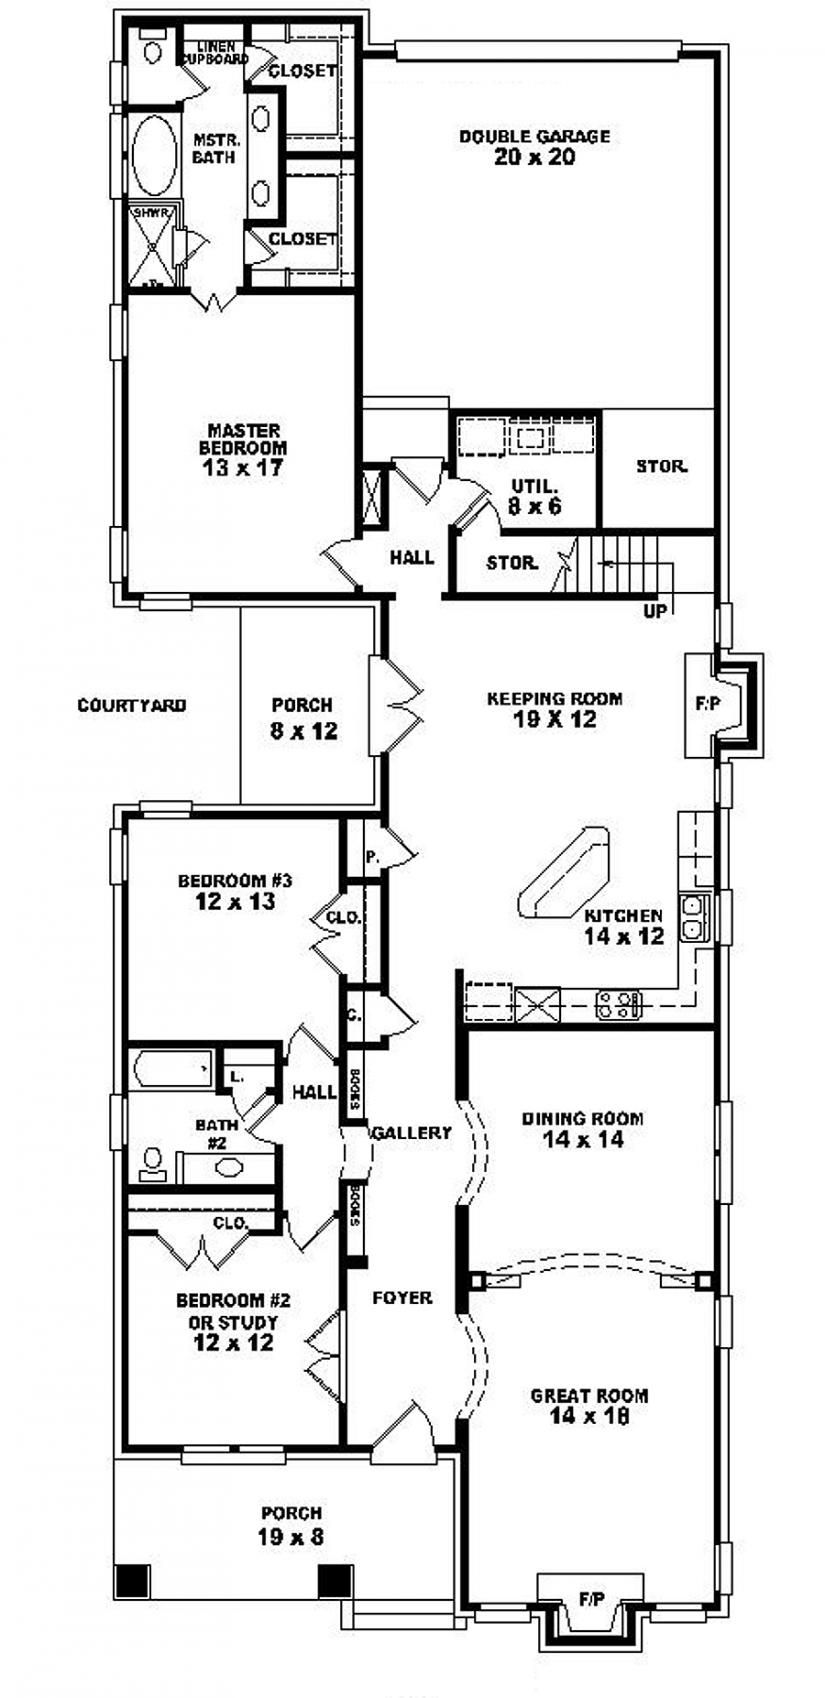 #653962   One And A Half Story 2 Bedroom, 2 Bath Craftsman Style House